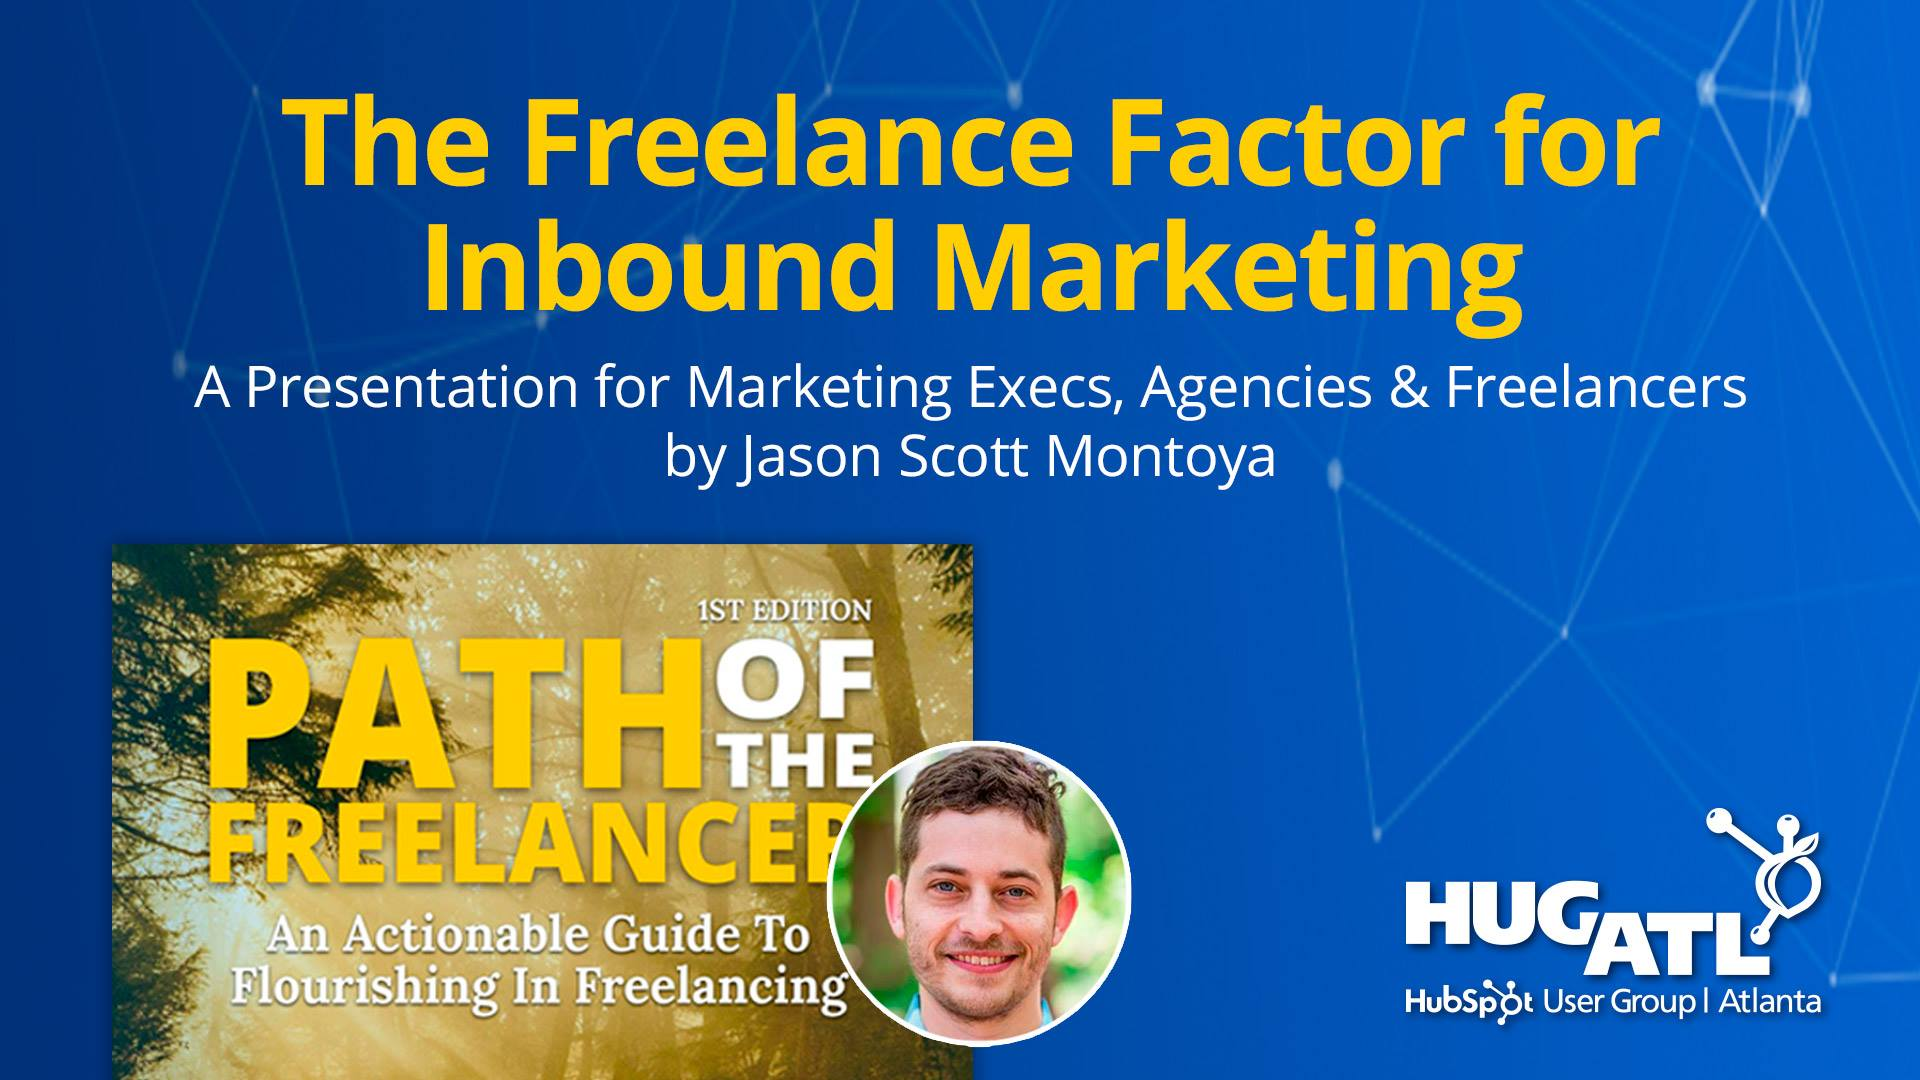 Event: The Freelancer Factor For Inbound Marketing May 17, 2017